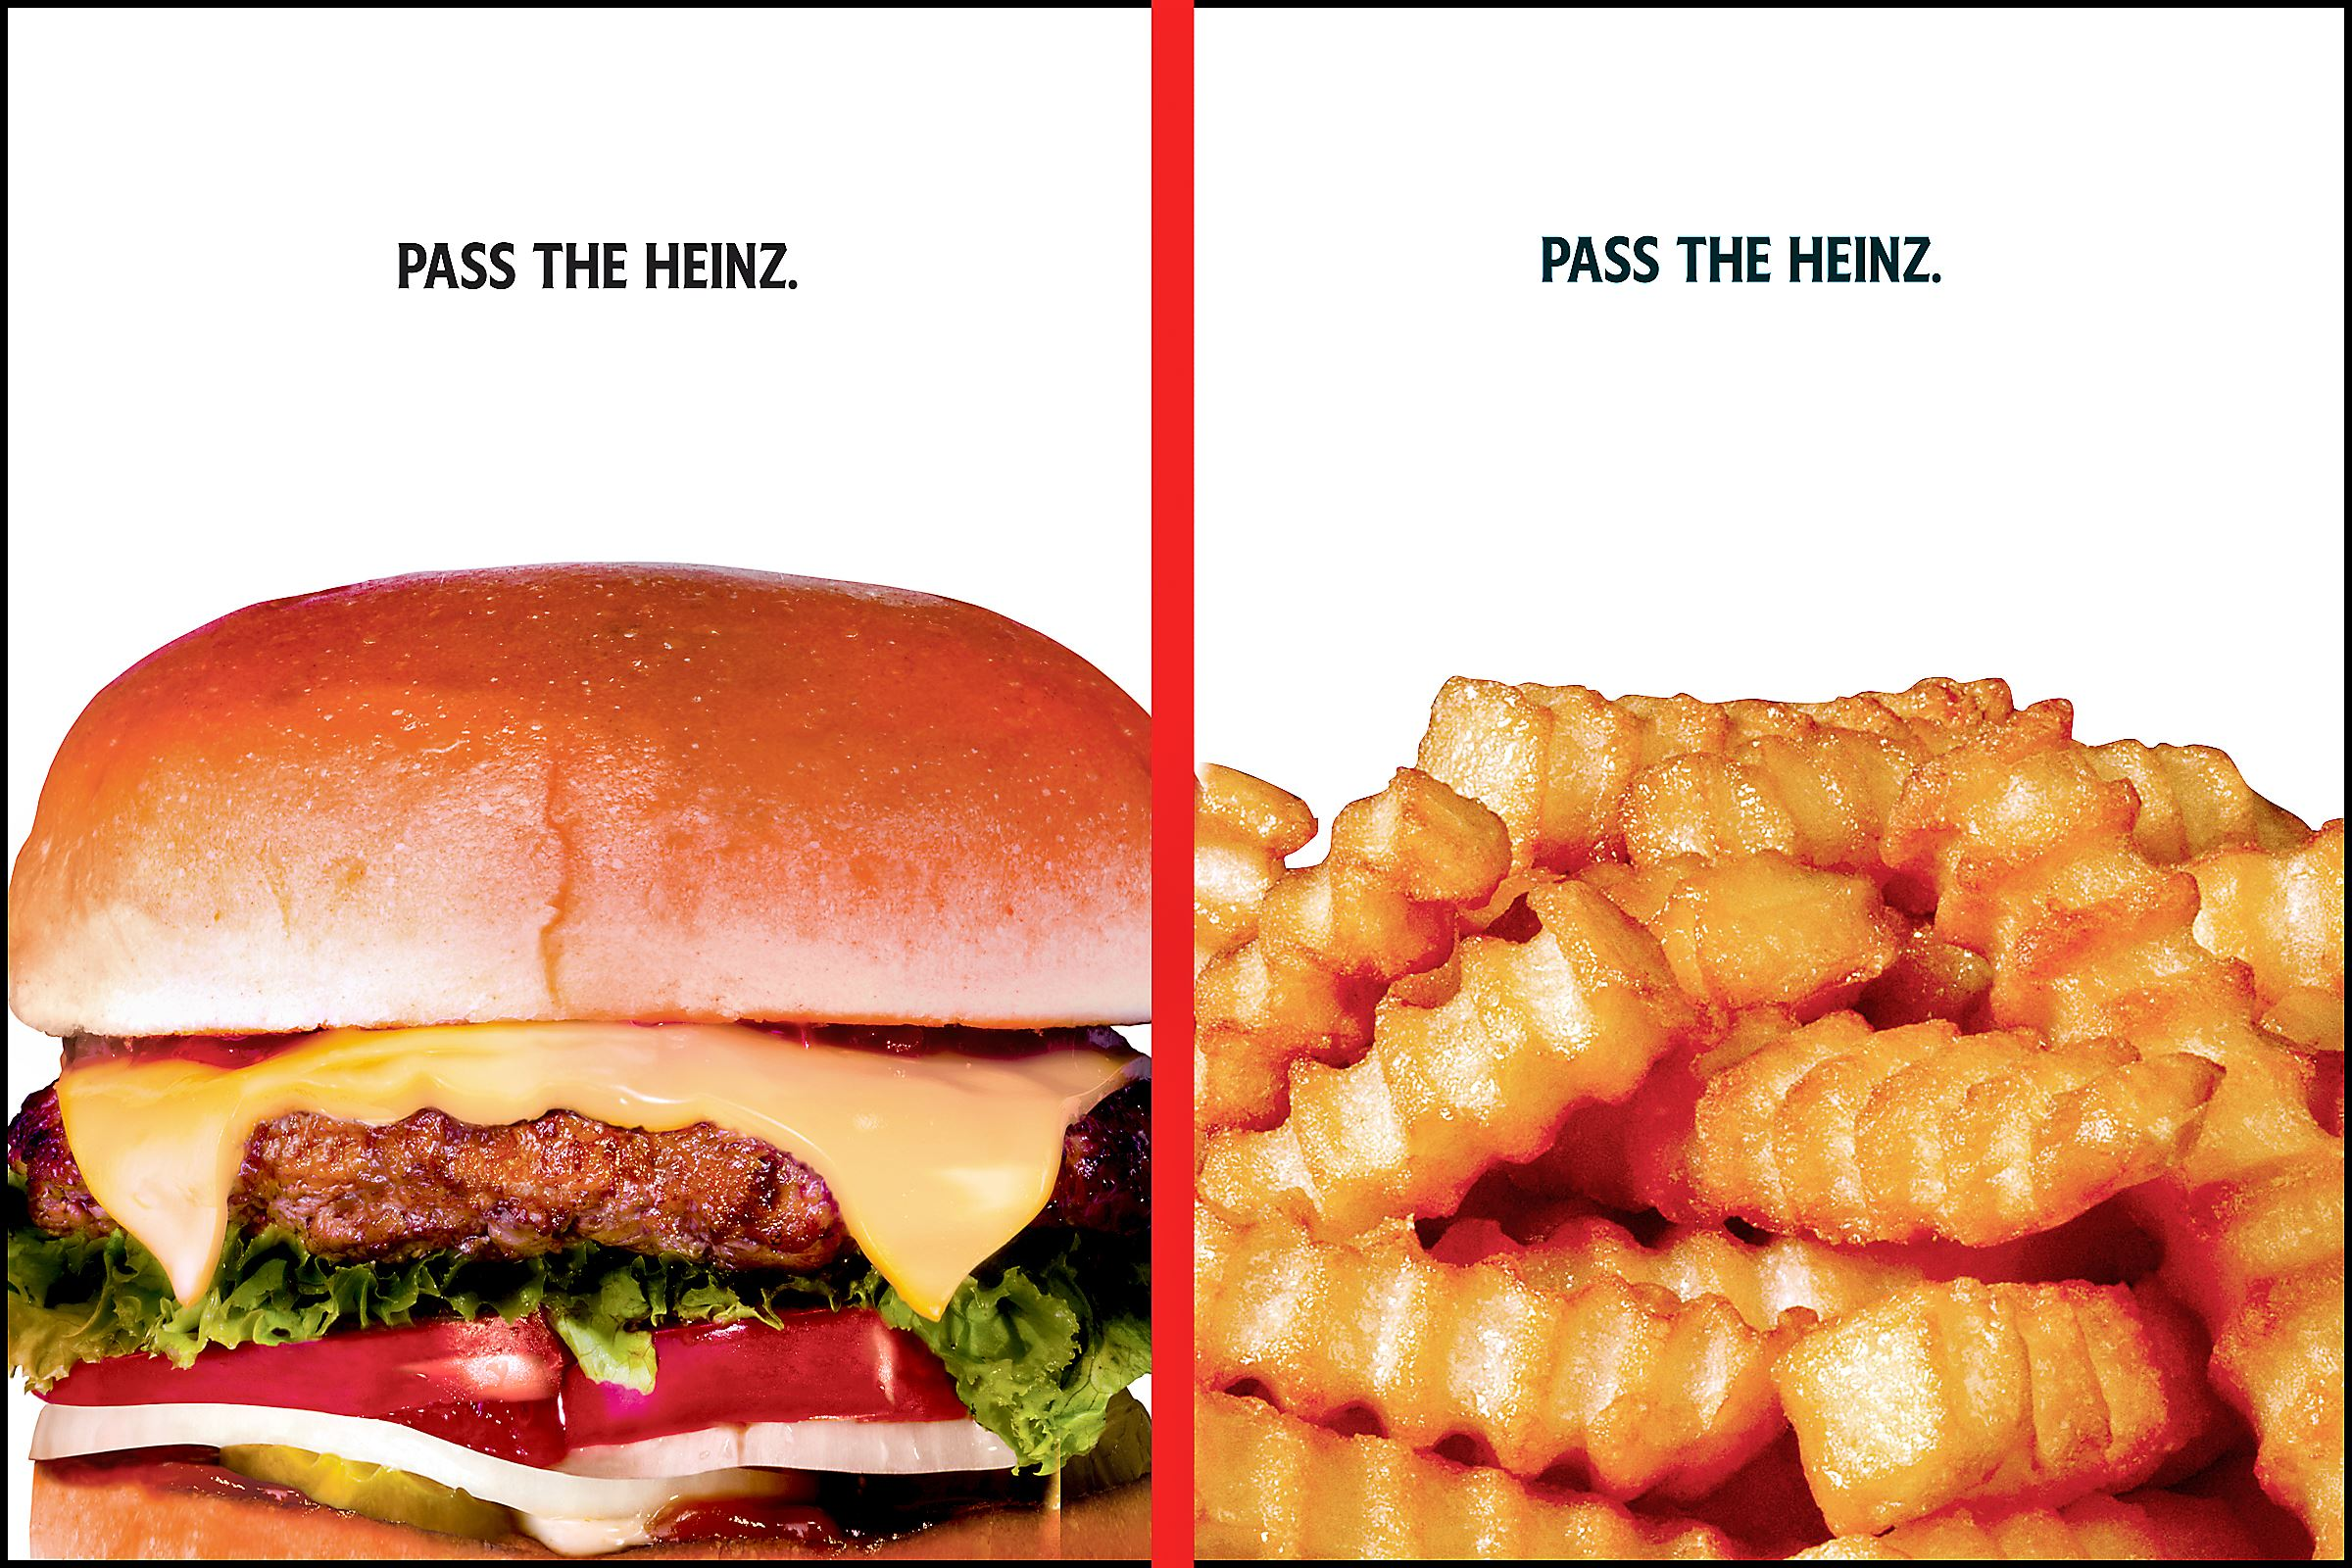 Heinz adopts ad campaign from